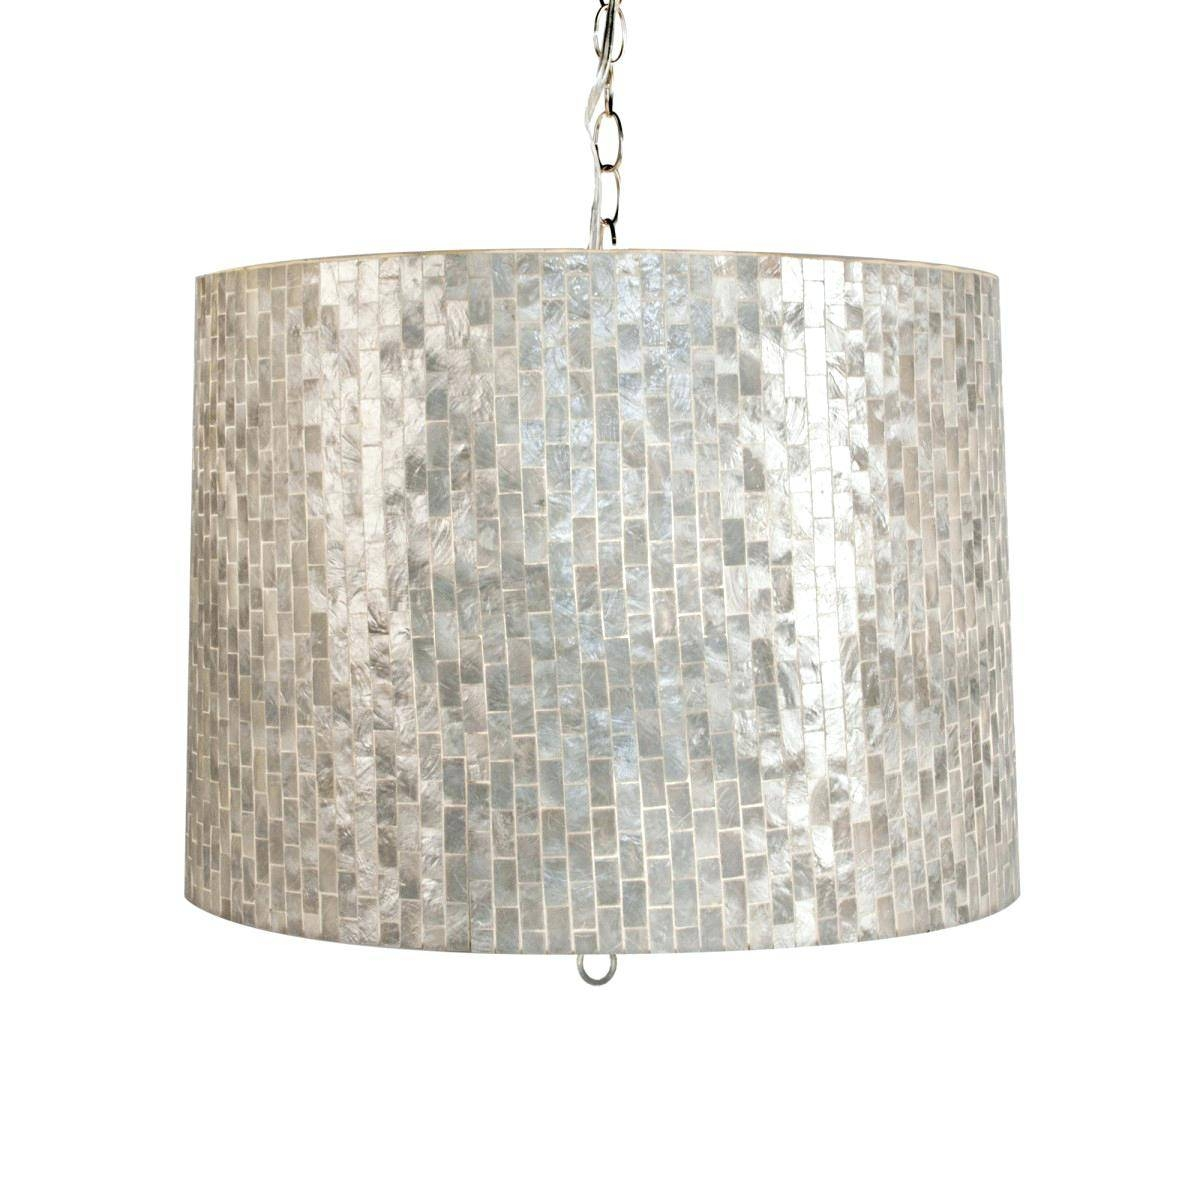 Mother Of Pearl Pendant Light Drum Shade Shell Chandeliers With In Shell Pendant Lights (View 10 of 15)